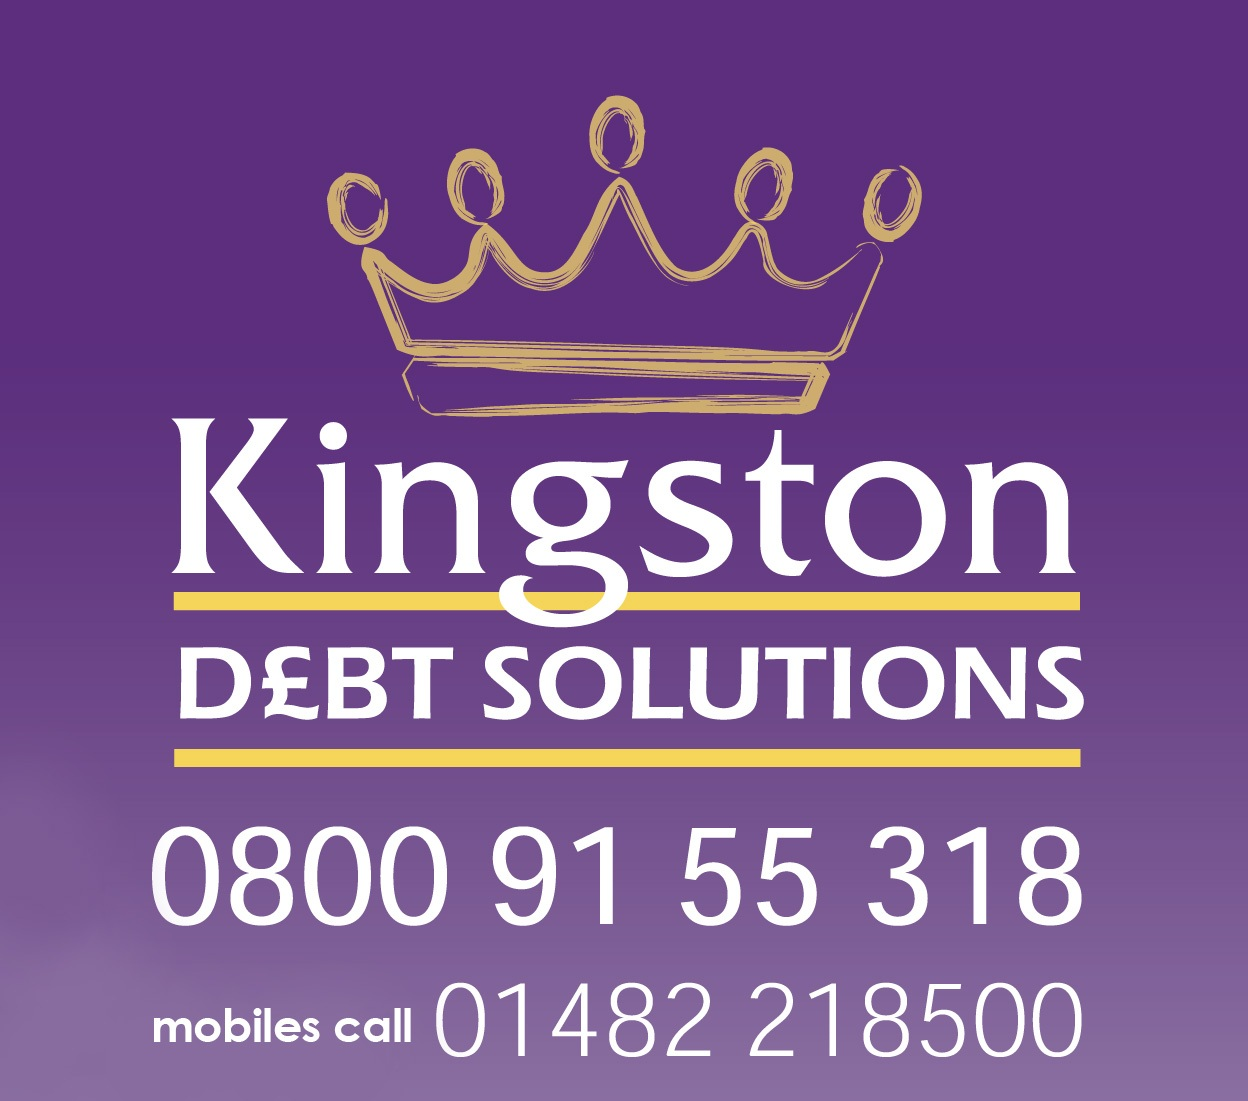 Kingston Debt Solutions